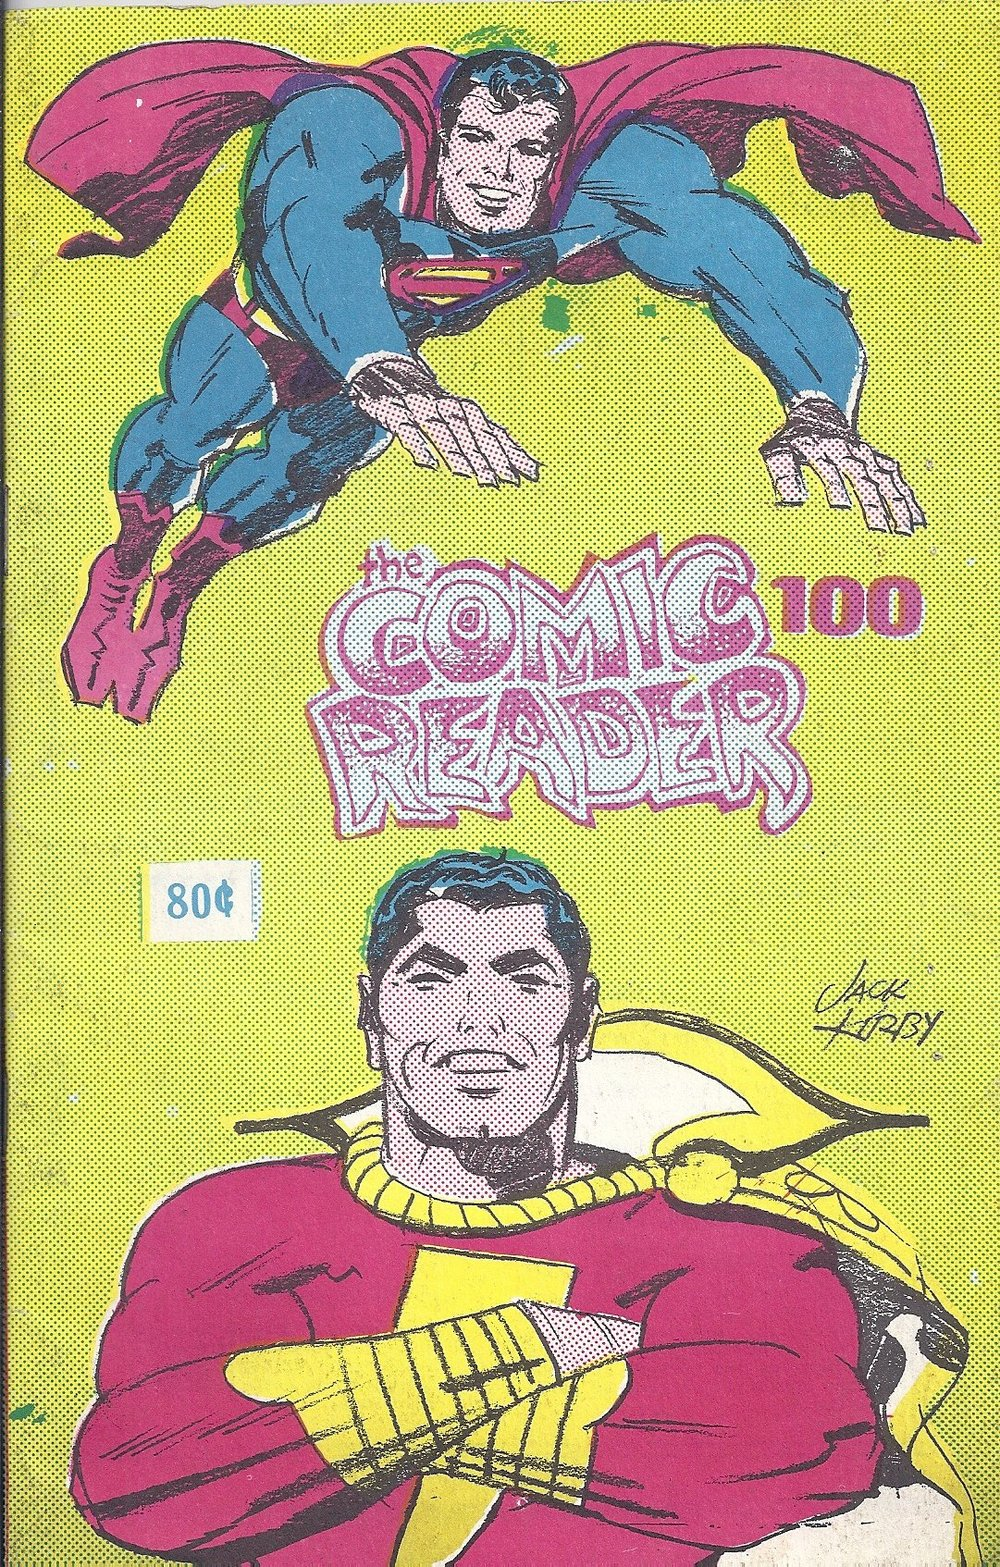 The Comic Reader (1962) #100. This September 1973 issue featured a cover by Jack Kirby.